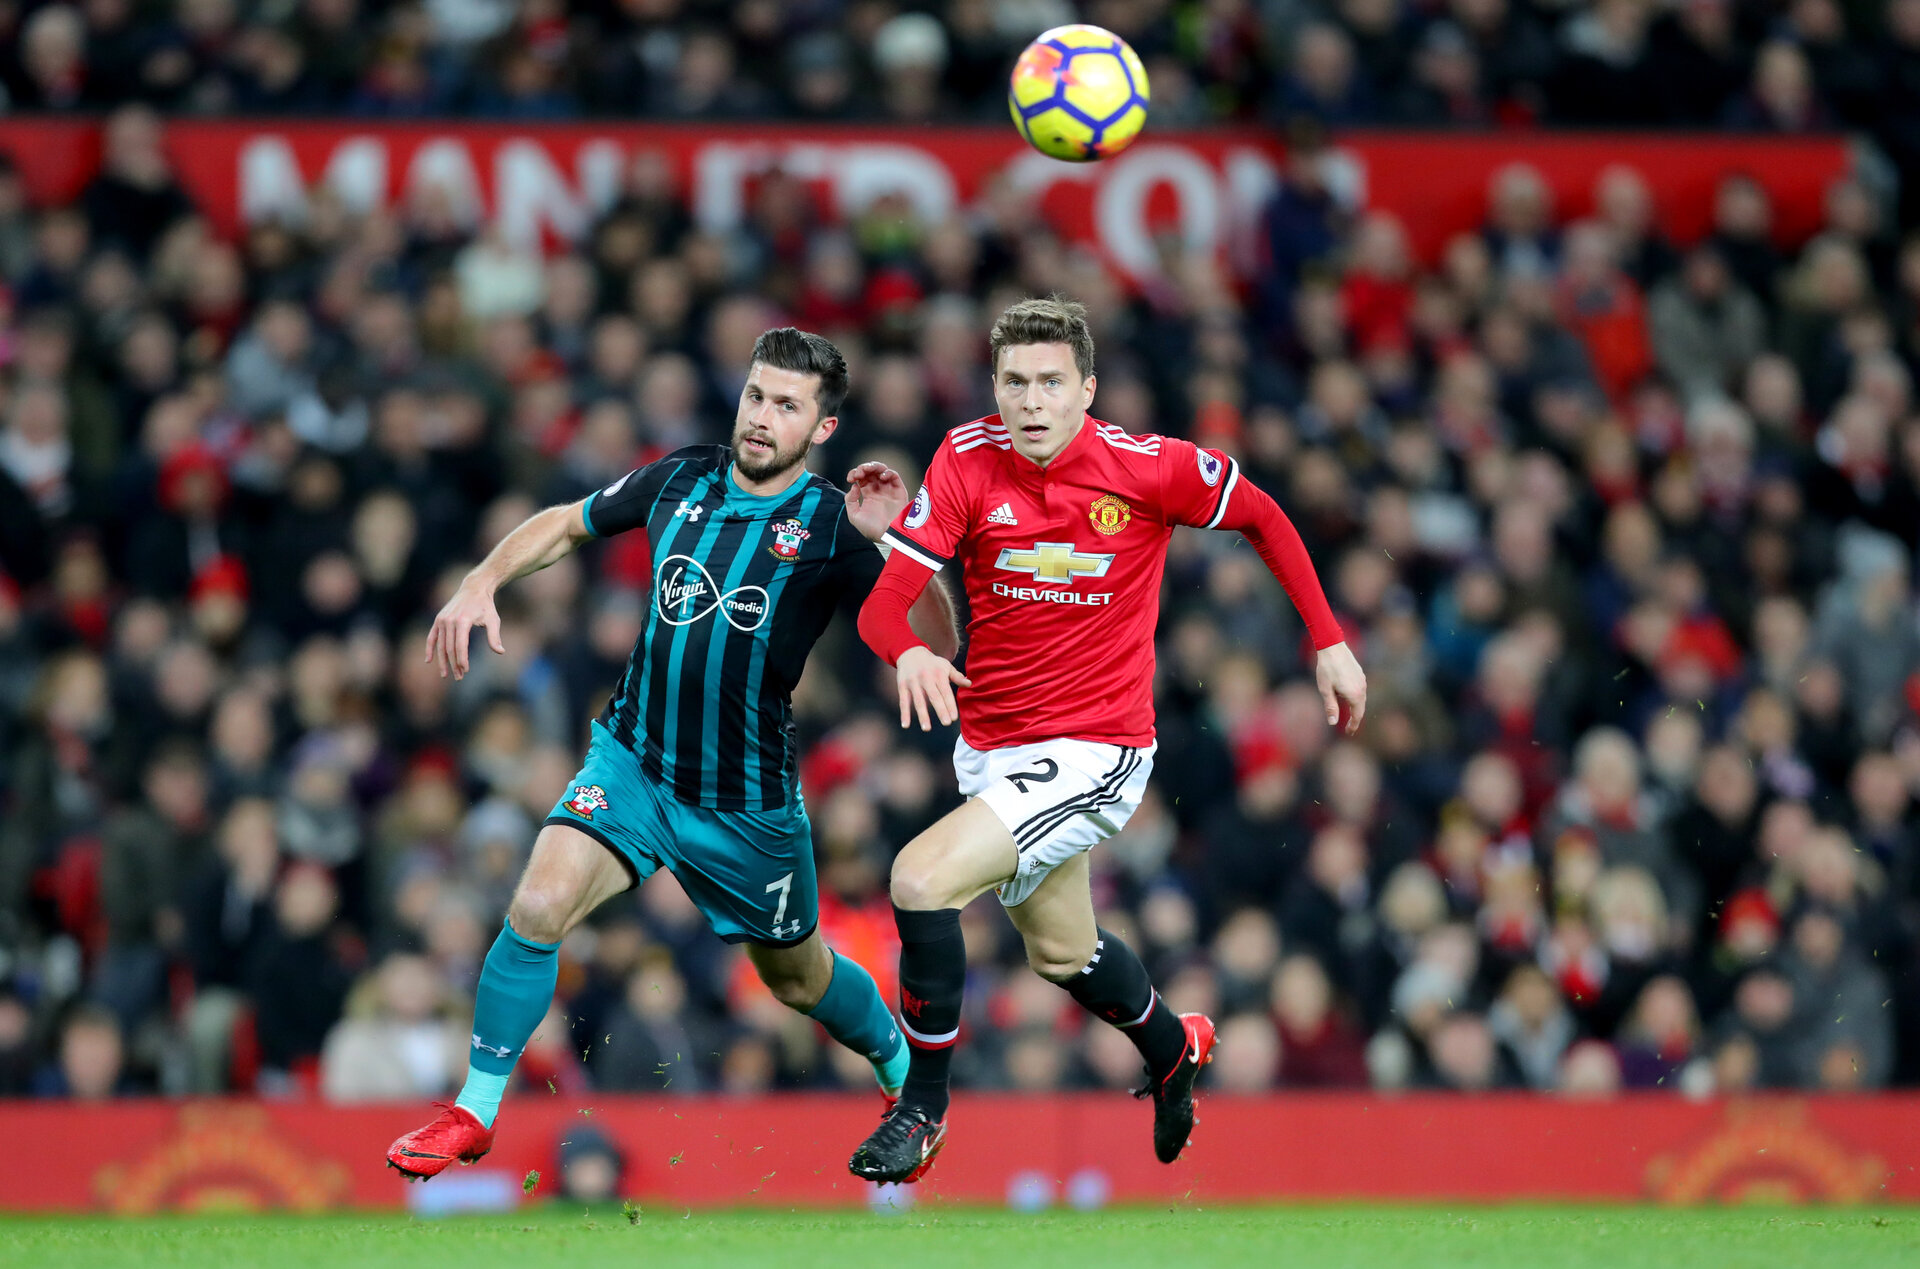 MANCHESTER, ENGLAND - DECEMBER 30: Southampton's Shane Long(L) and Victor Lindelof of Manchester United during the Premier League match between Manchester United and Southampton at Old Trafford on December 30, 2017 in Manchester, England. (Photo by Matt Watson/Southampton FC via Getty Images)